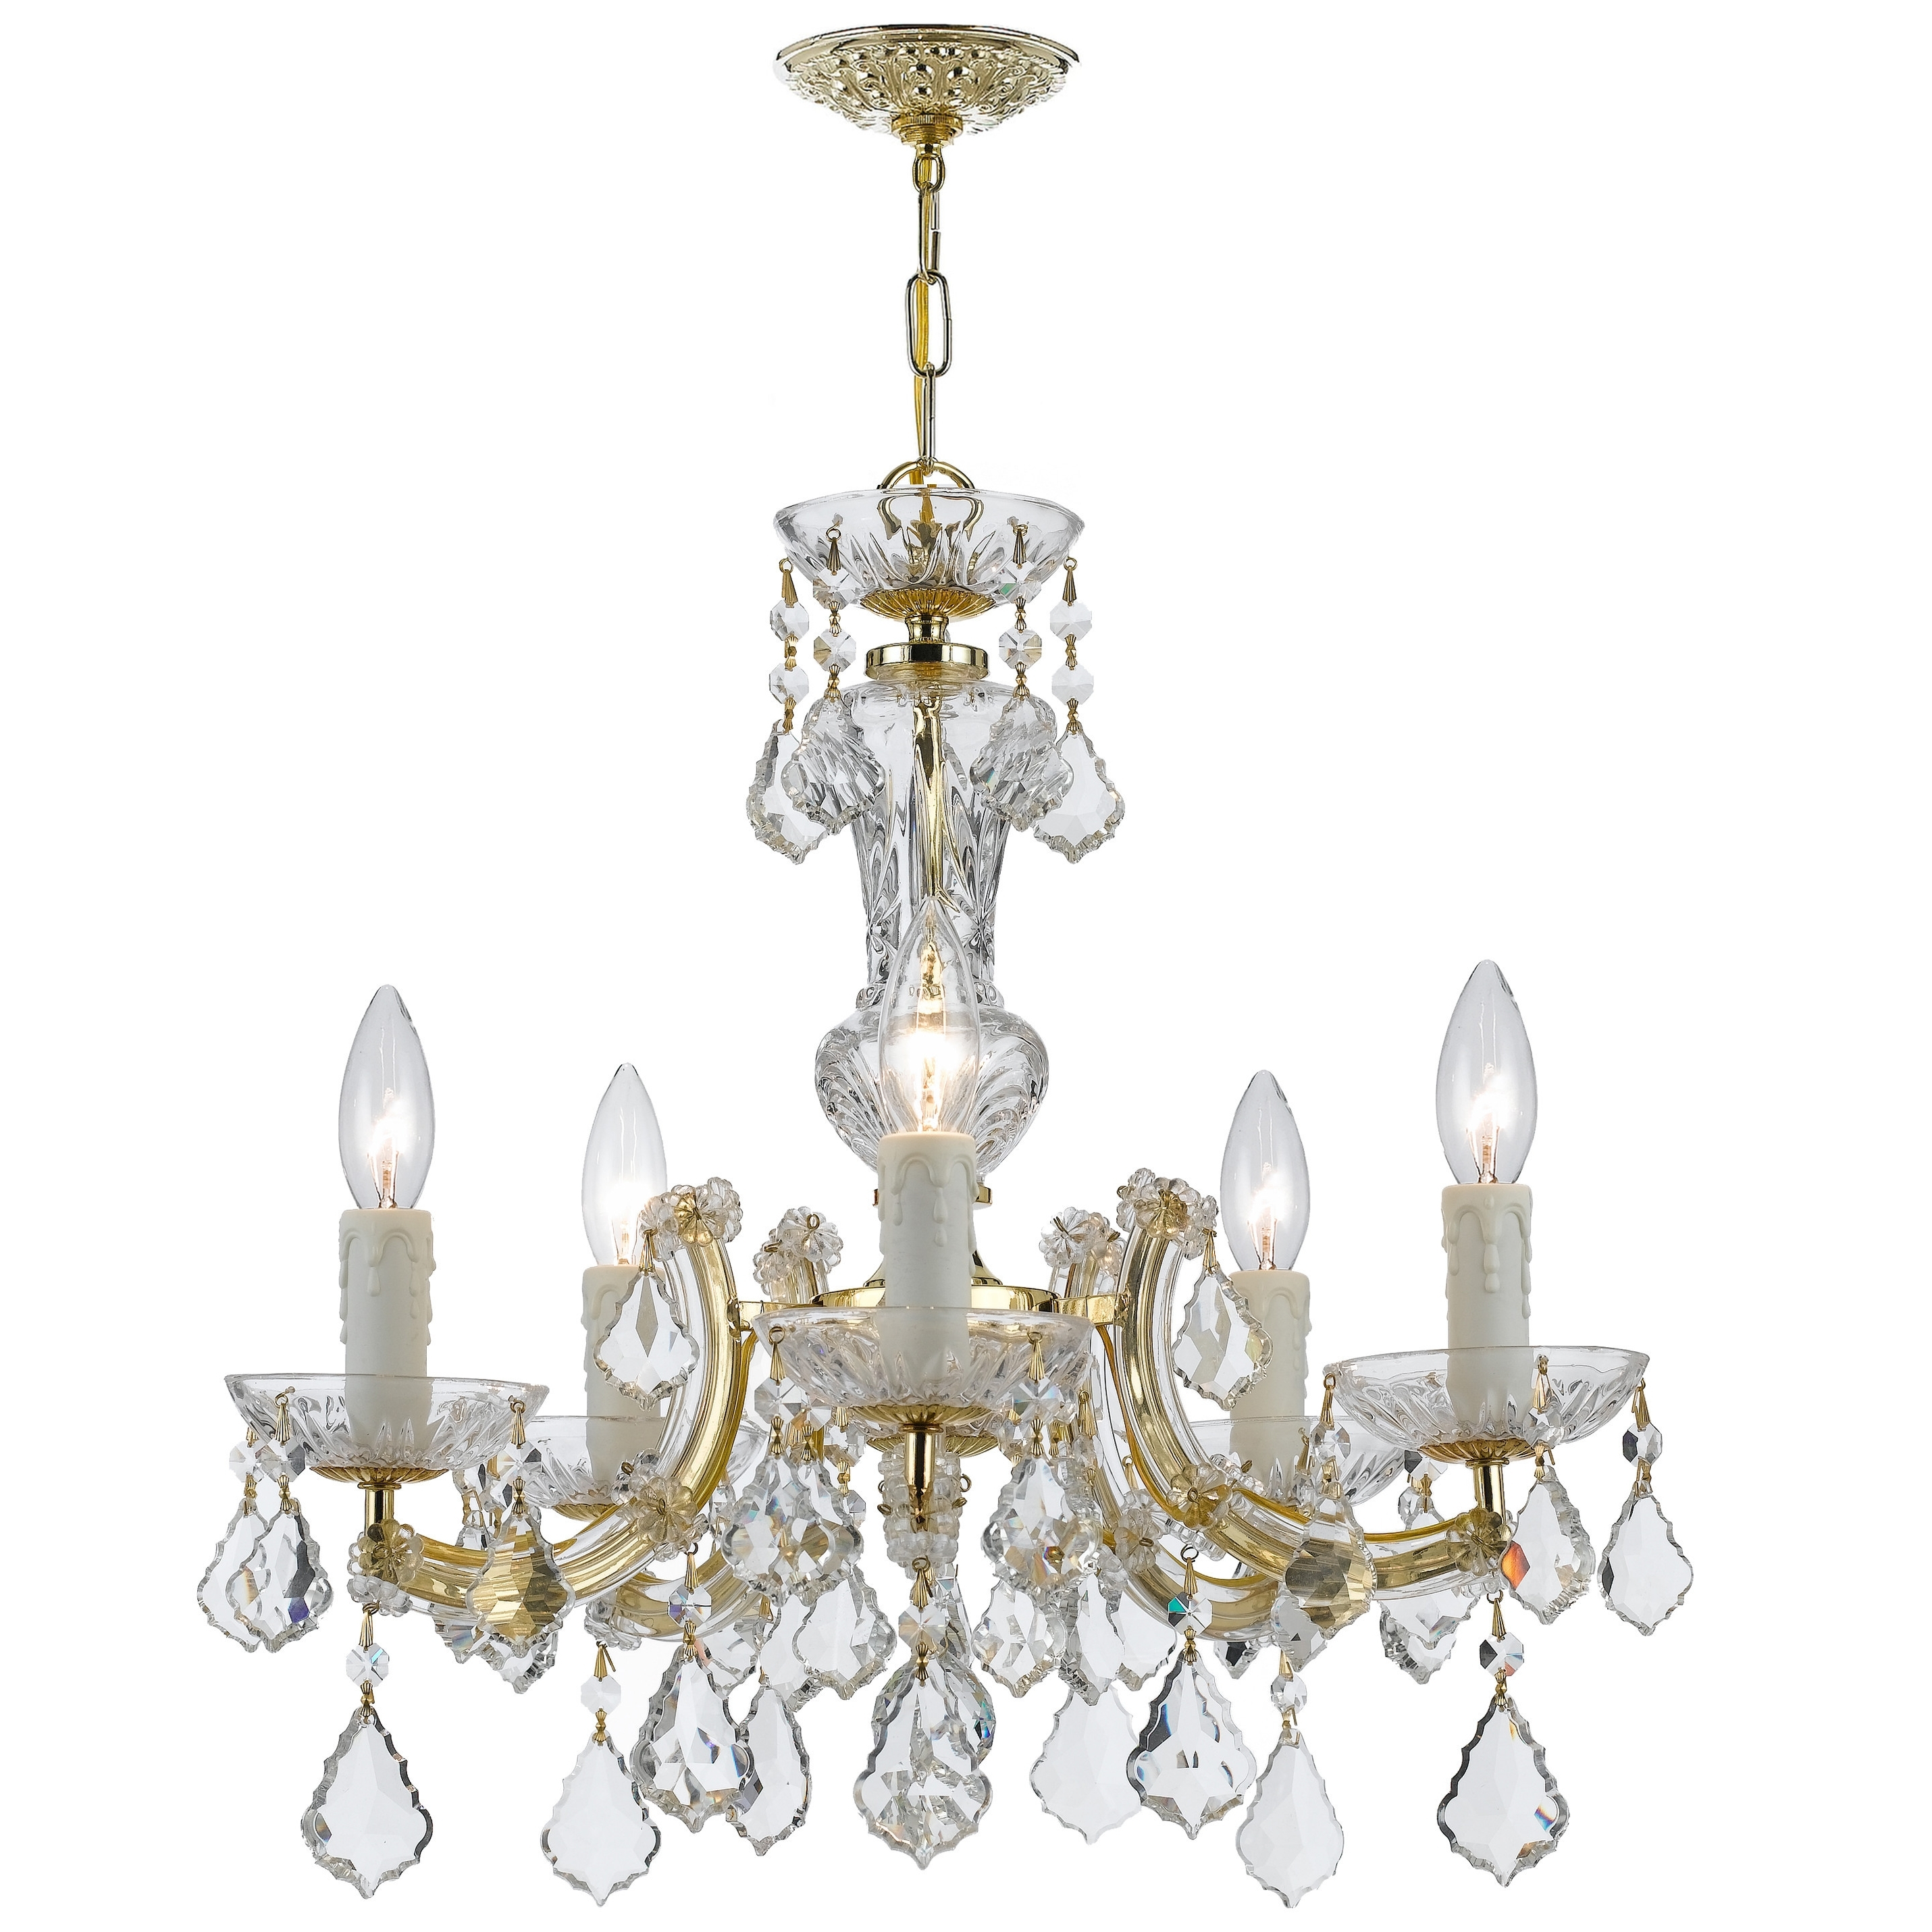 Newest Chandeliers : Maria Theresa Chandelier Elegant Endon Lighting 2 Within Endon Lighting Chandeliers (Gallery 13 of 20)